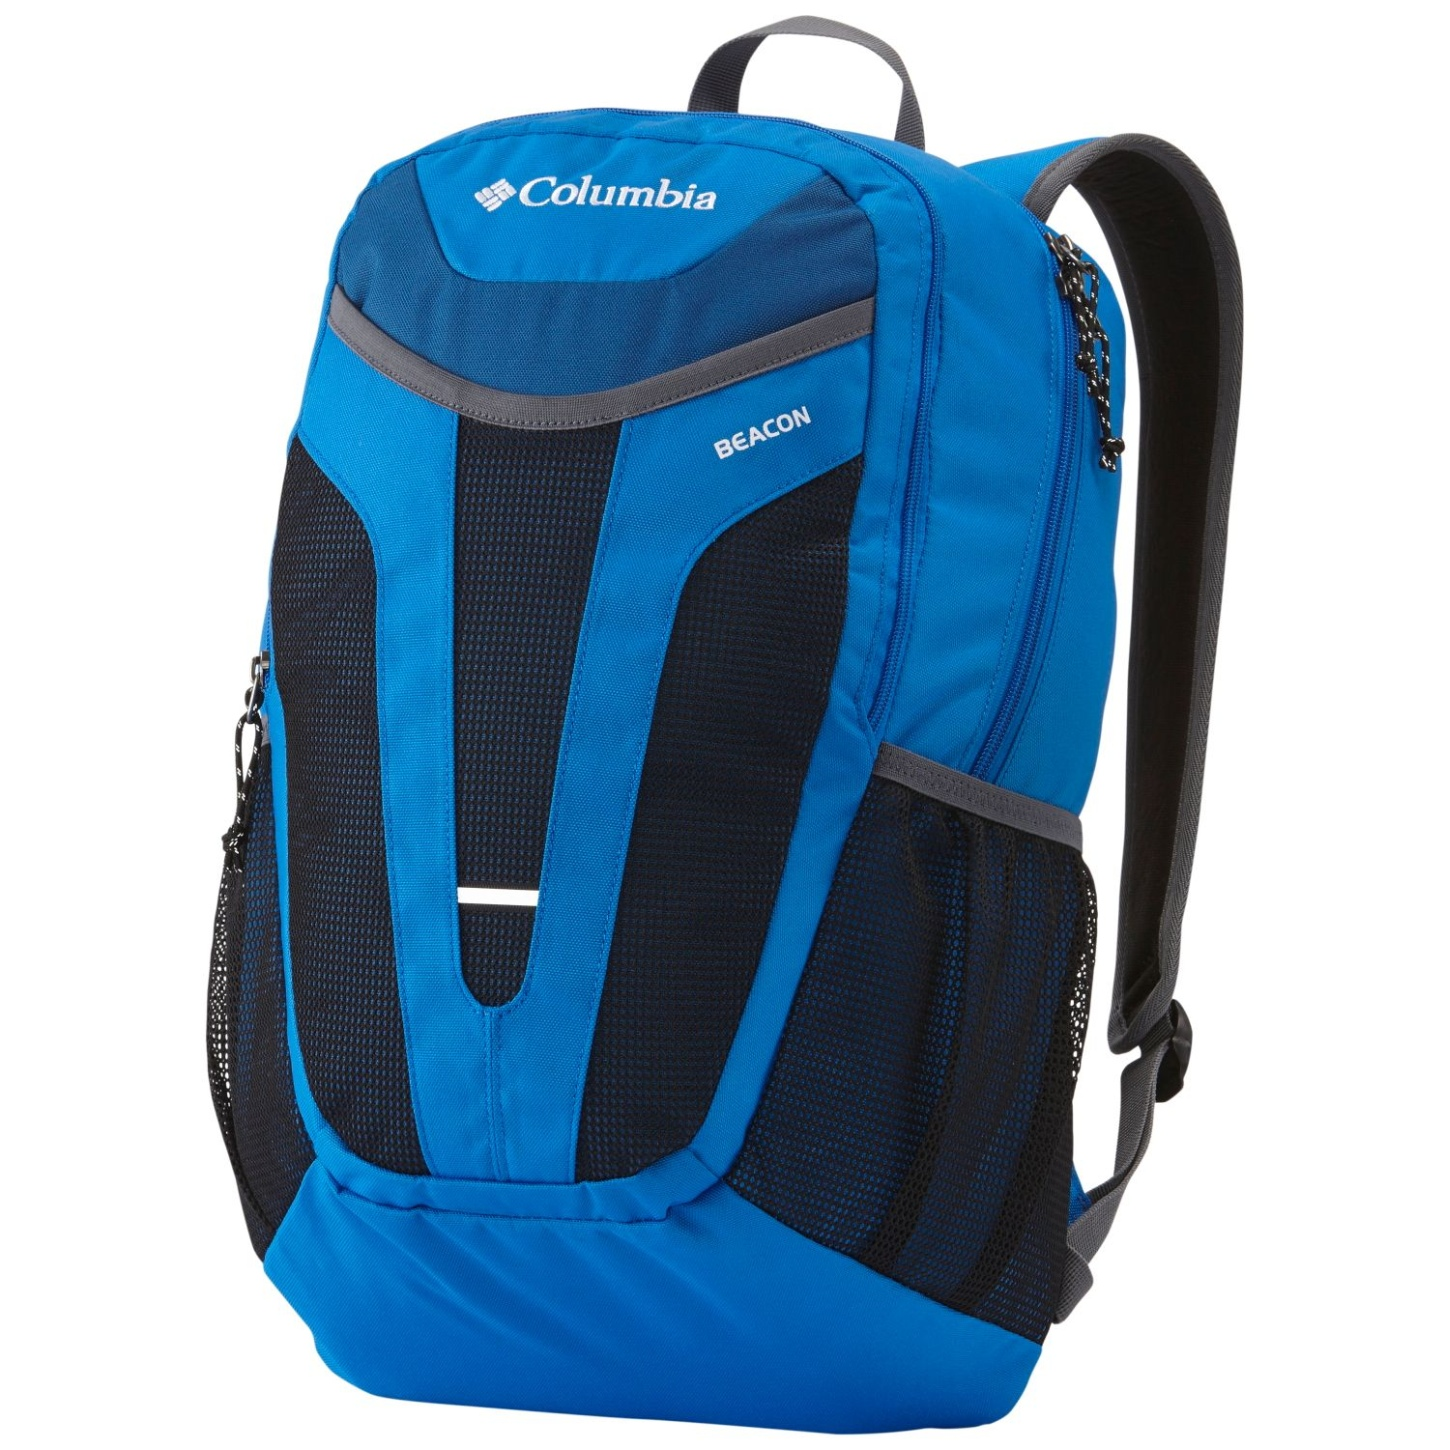 Columbia Beacon Daypack Bag Super Blue, Marine Blue-30